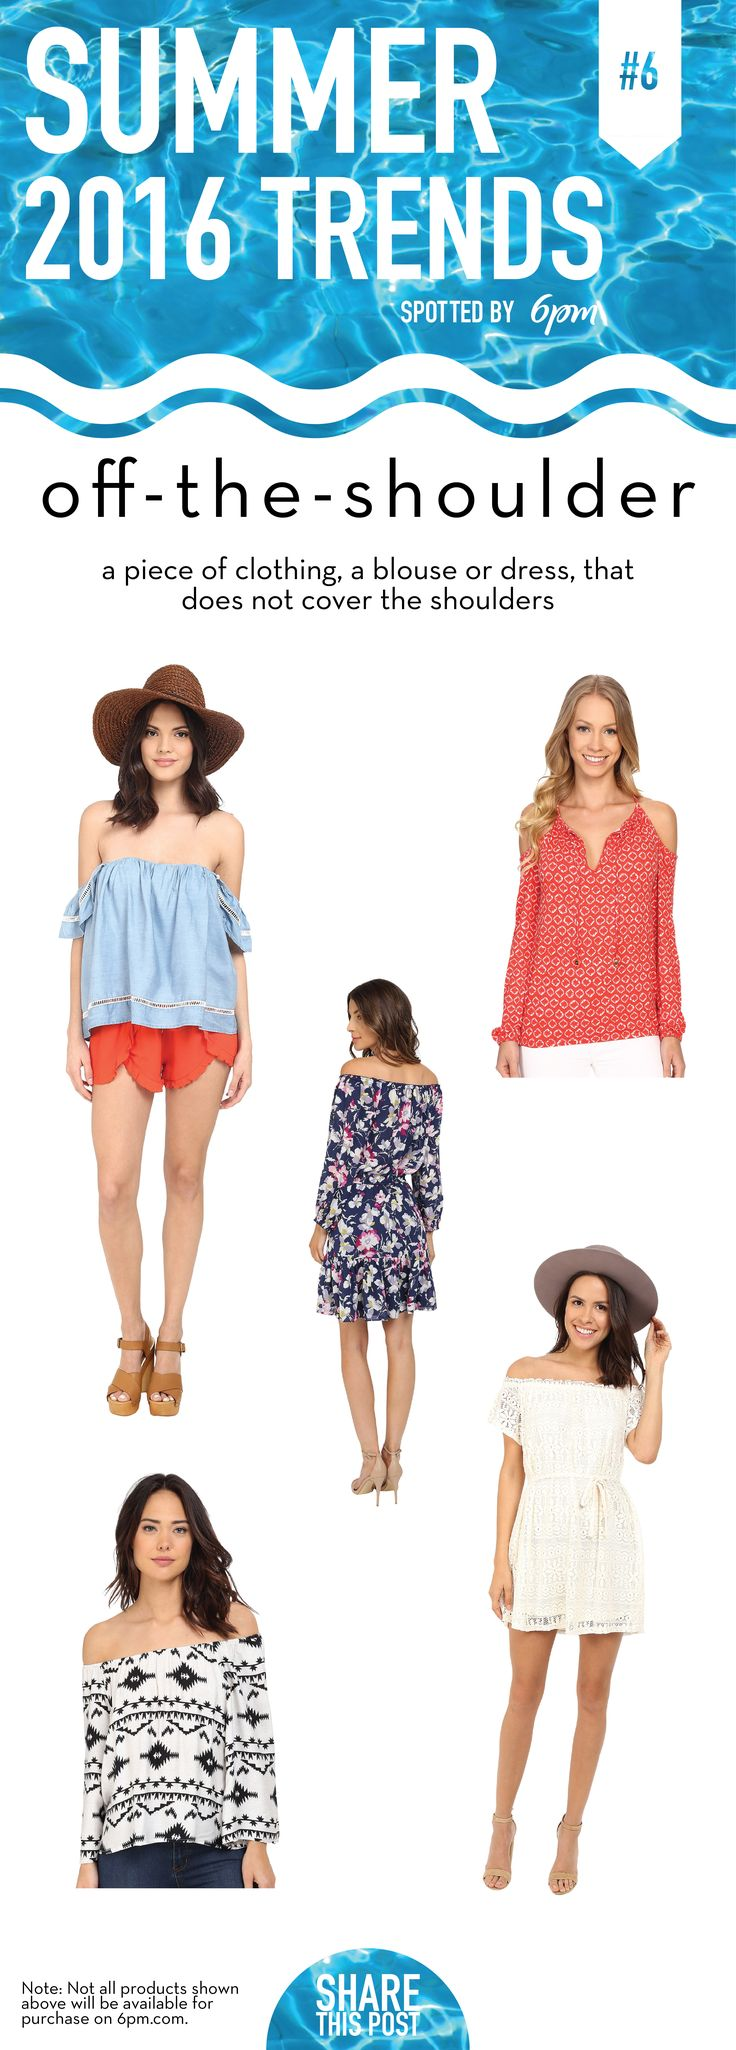 #summergoals Off-the-shoulder styles are literally everything. An obvious favorite Summer 2016 fashion trend known for its romantic skin baring style that's perfect for summer and music festivals. MICHAEL Michael Kors Kumo Cold Shoulder Peasant Top, ONLY Gaya Short Sleeve Off the Shoulder Dress, BB Dakota Marley Symbol Printed Rayon Off The Shoulder Top, Lovers + Friends Life's A Beach Top, Joie Marx Dress.